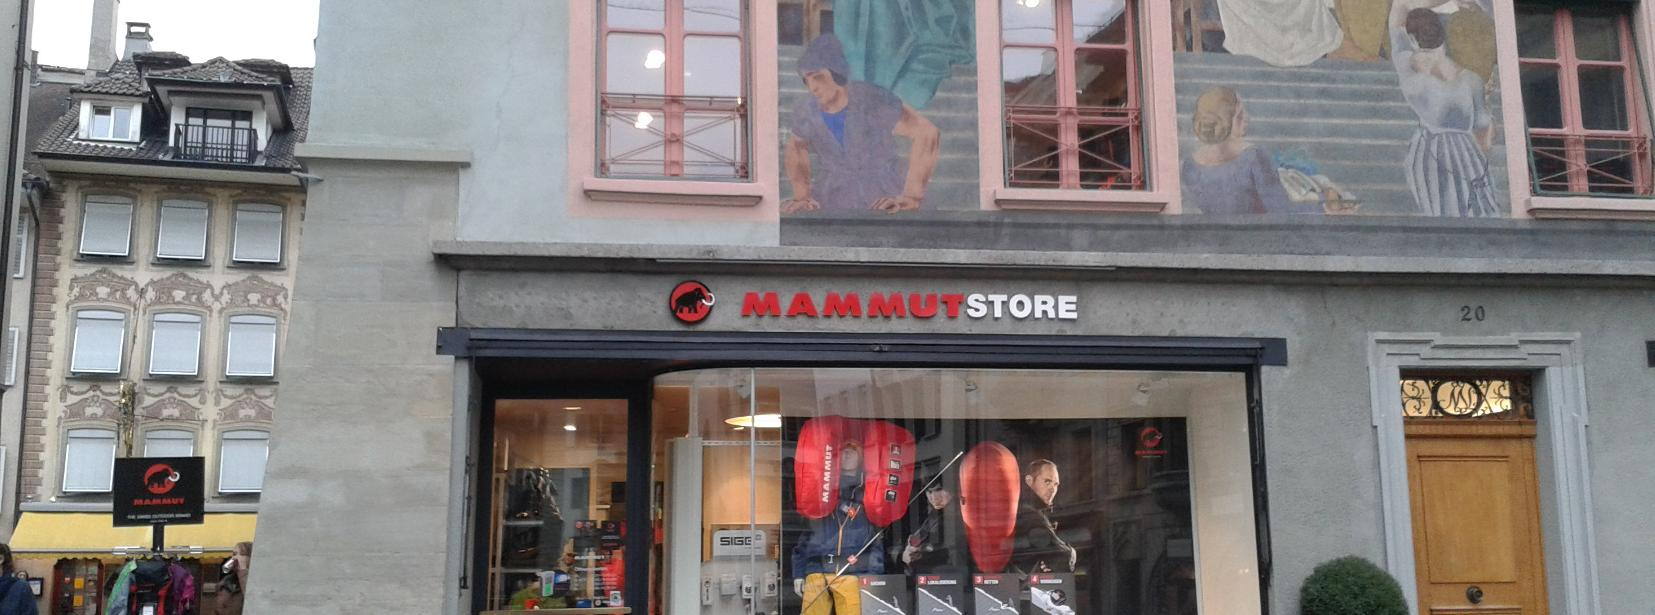 mammut store luzern lucerne mycityhighlight. Black Bedroom Furniture Sets. Home Design Ideas